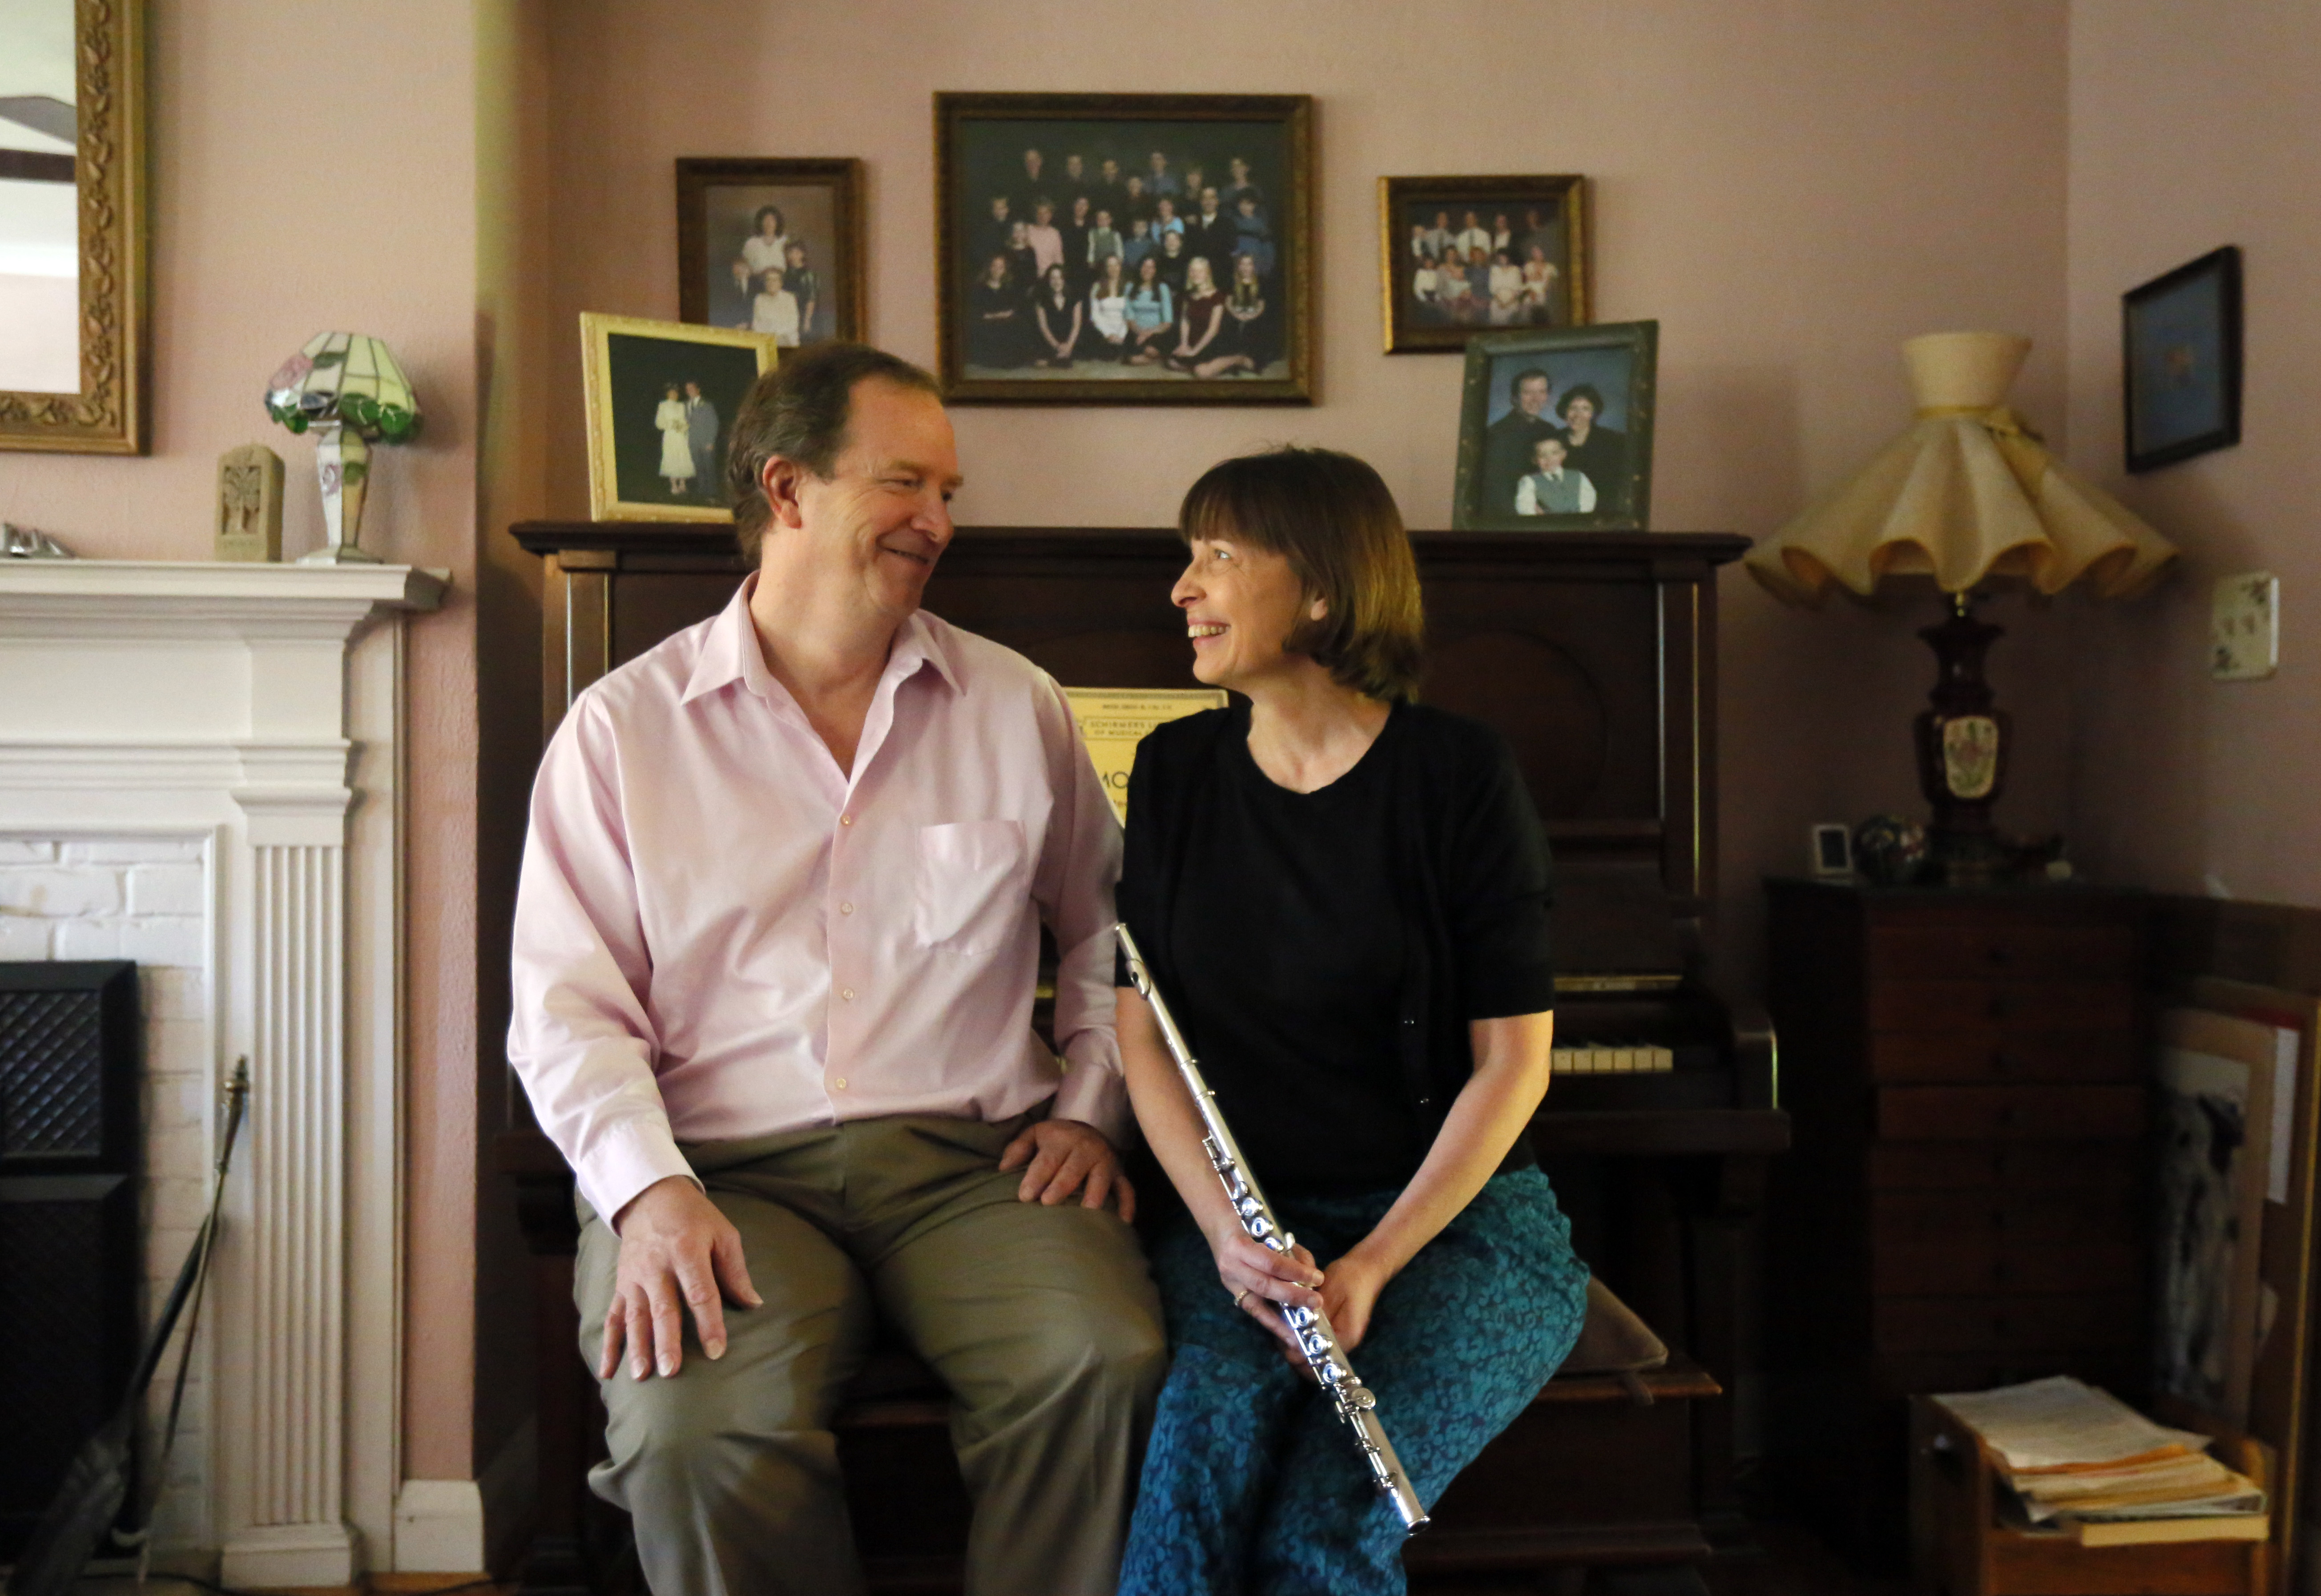 Some Of Toledos Top Classical Artists Are Married To One